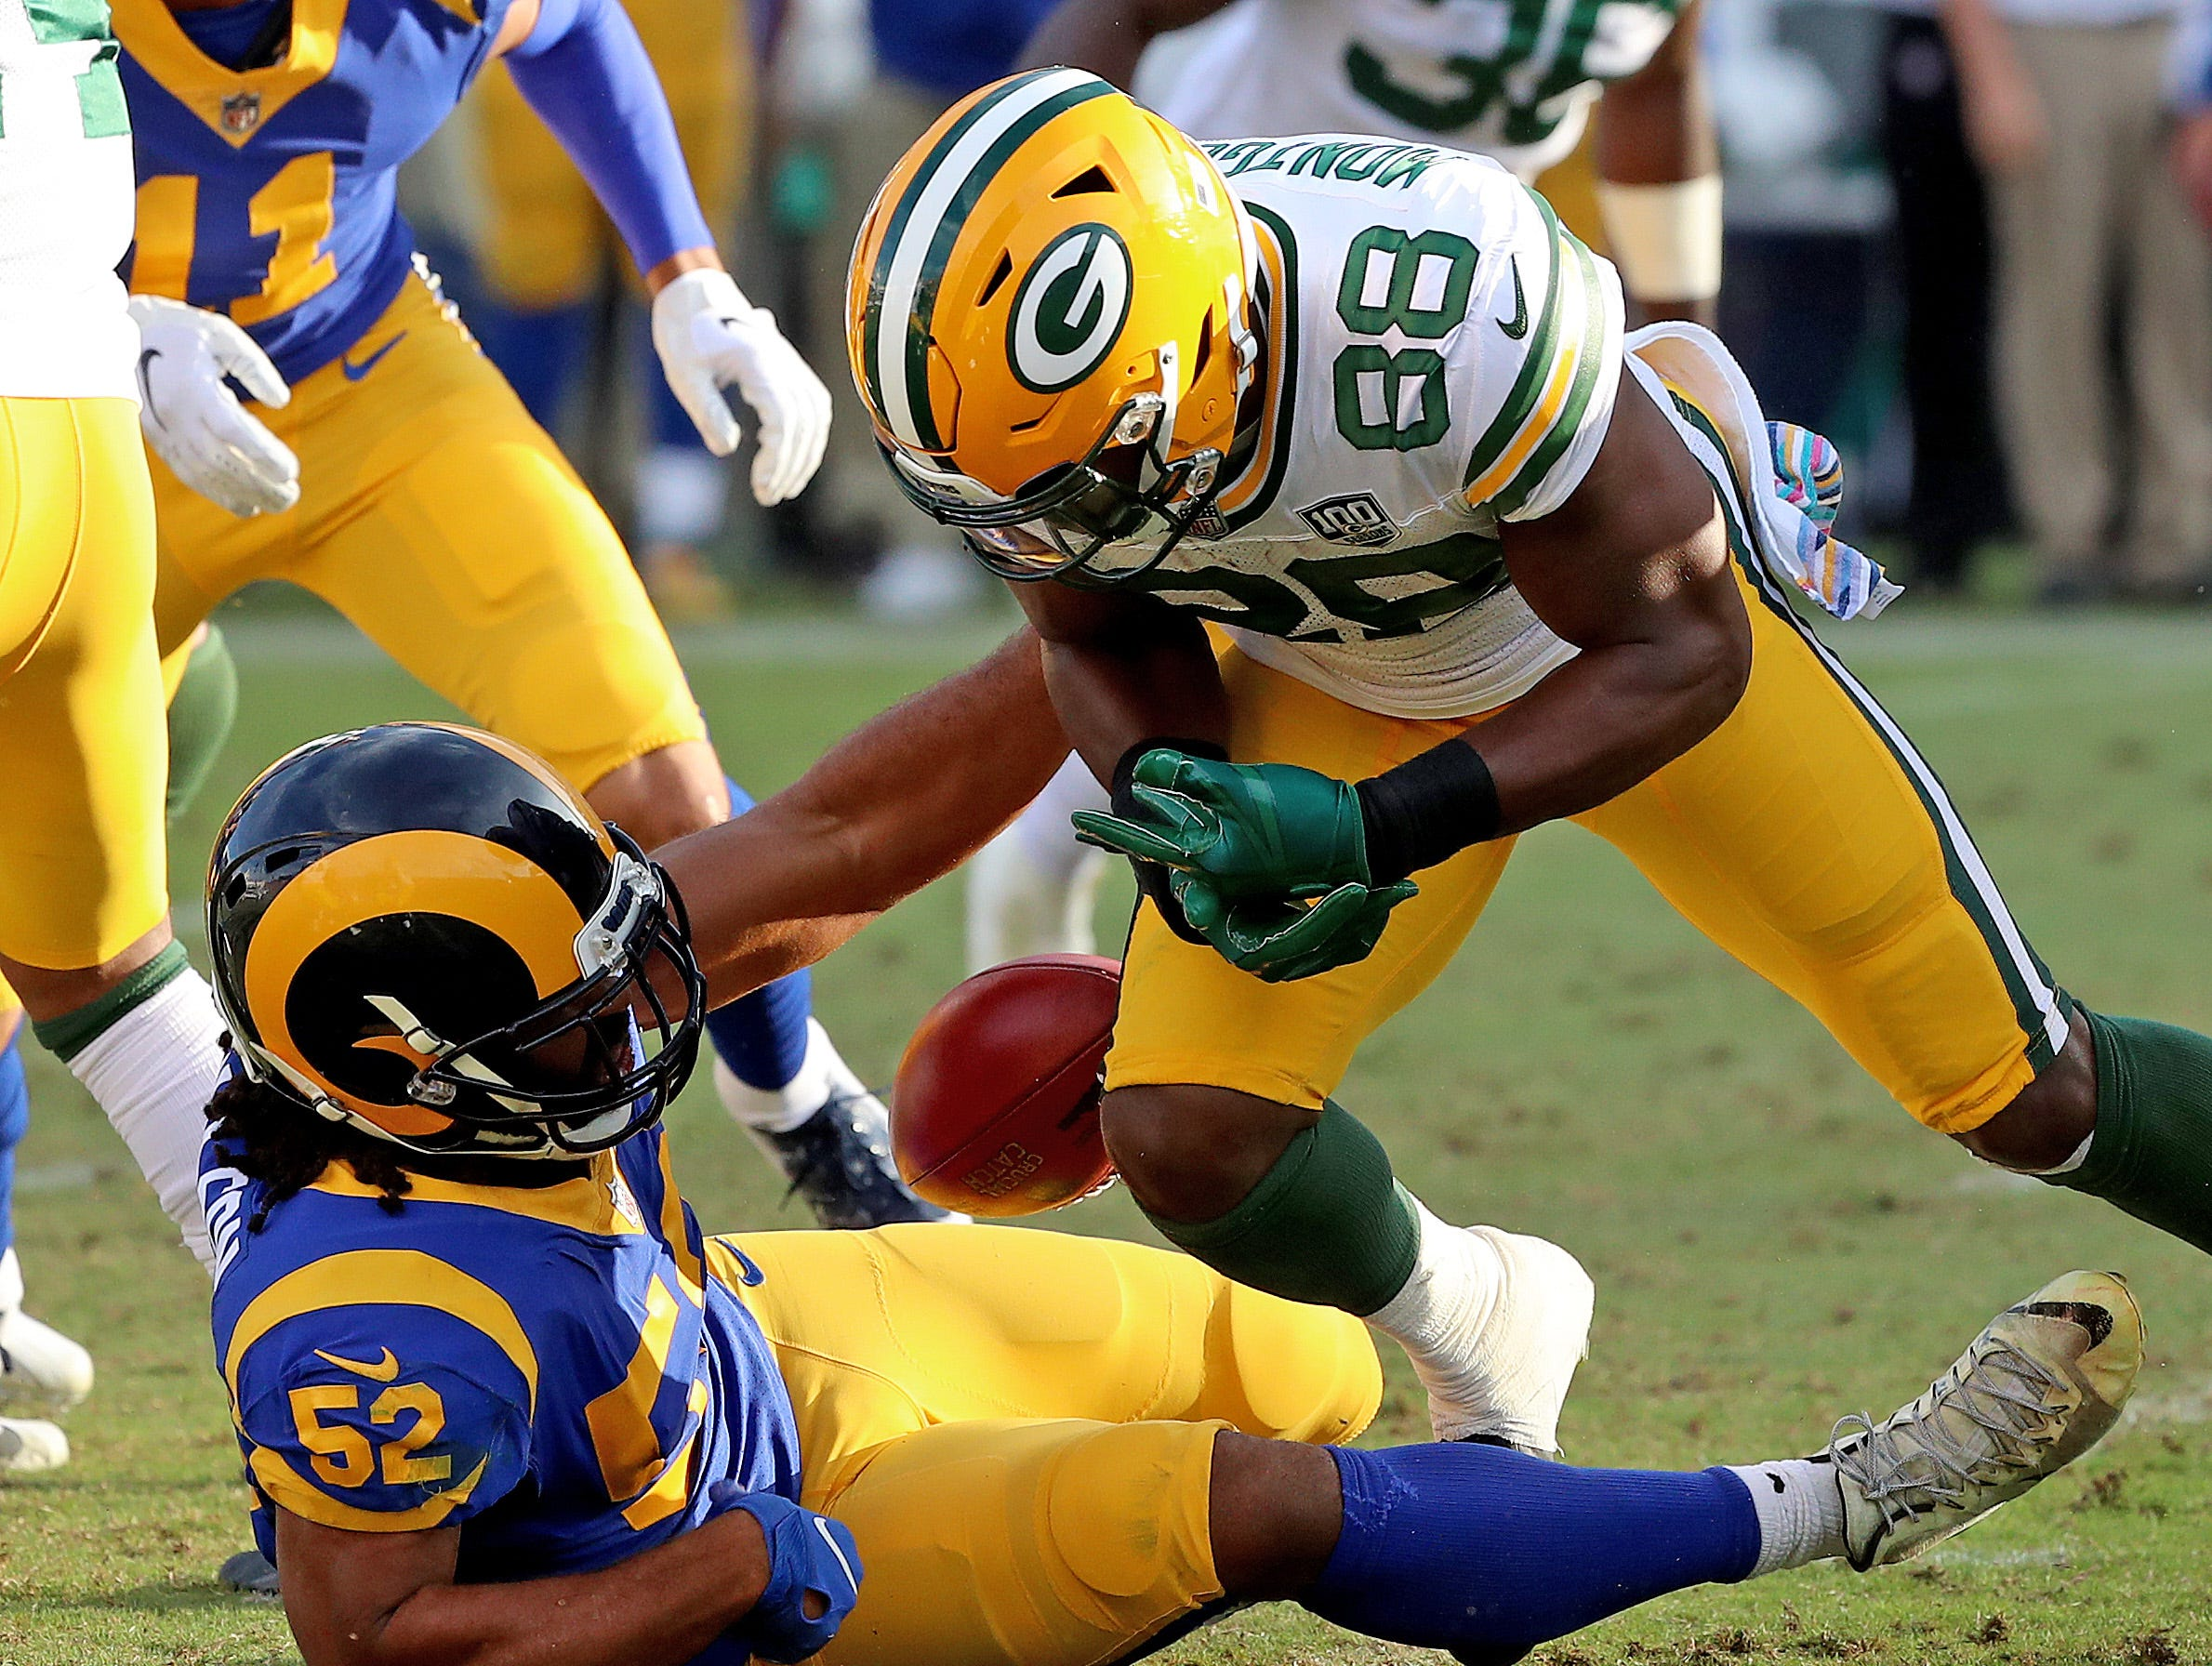 Green Bay Packers running back Ty Montgomery (88) fumbles the ball on a kickoff return late in the game linebacker Ramik Wilson (52) against the LA Rams Sunday, October 28, 2018 at the Memorial Coliseum in Los Angeles, Cal. Jim Matthews/USA TODAY NETWORK-Wis